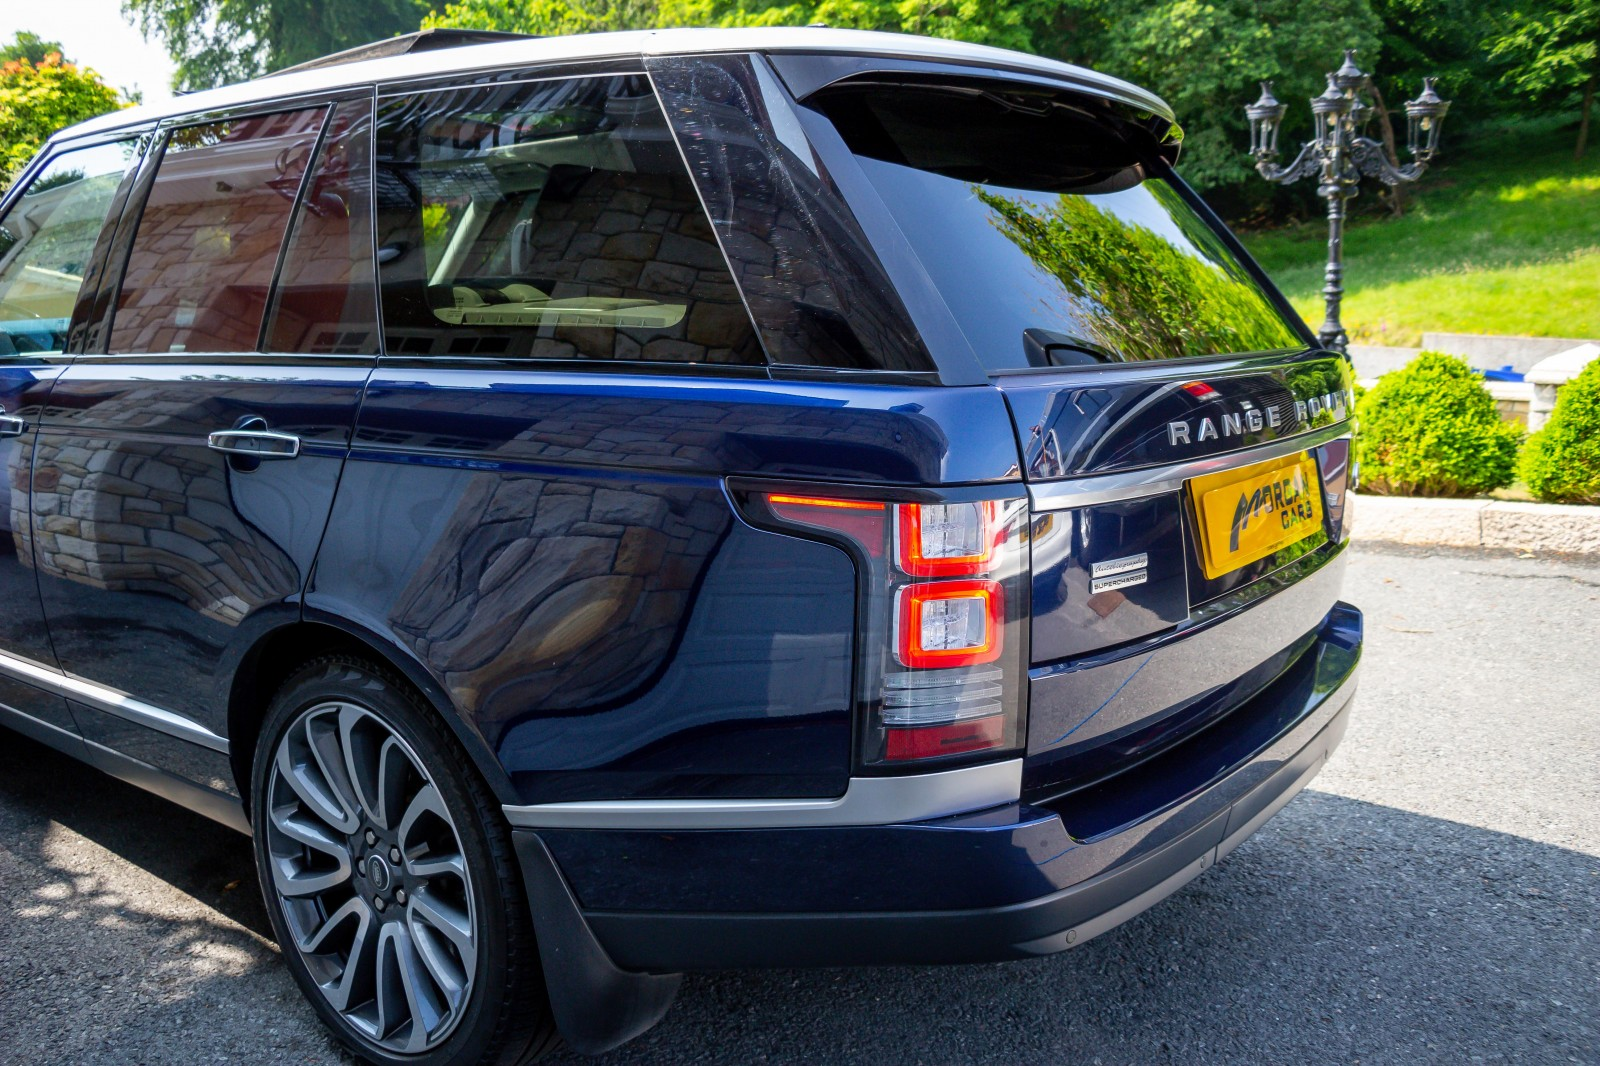 2015 Land Rover Range Rover 5.0 SUPERCHARGED V8 AUTOBIOGRAPHY Petrol Automatic – Morgan Cars 9 Mound Road, Warrenpoint, Newry BT34 3LW, UK full